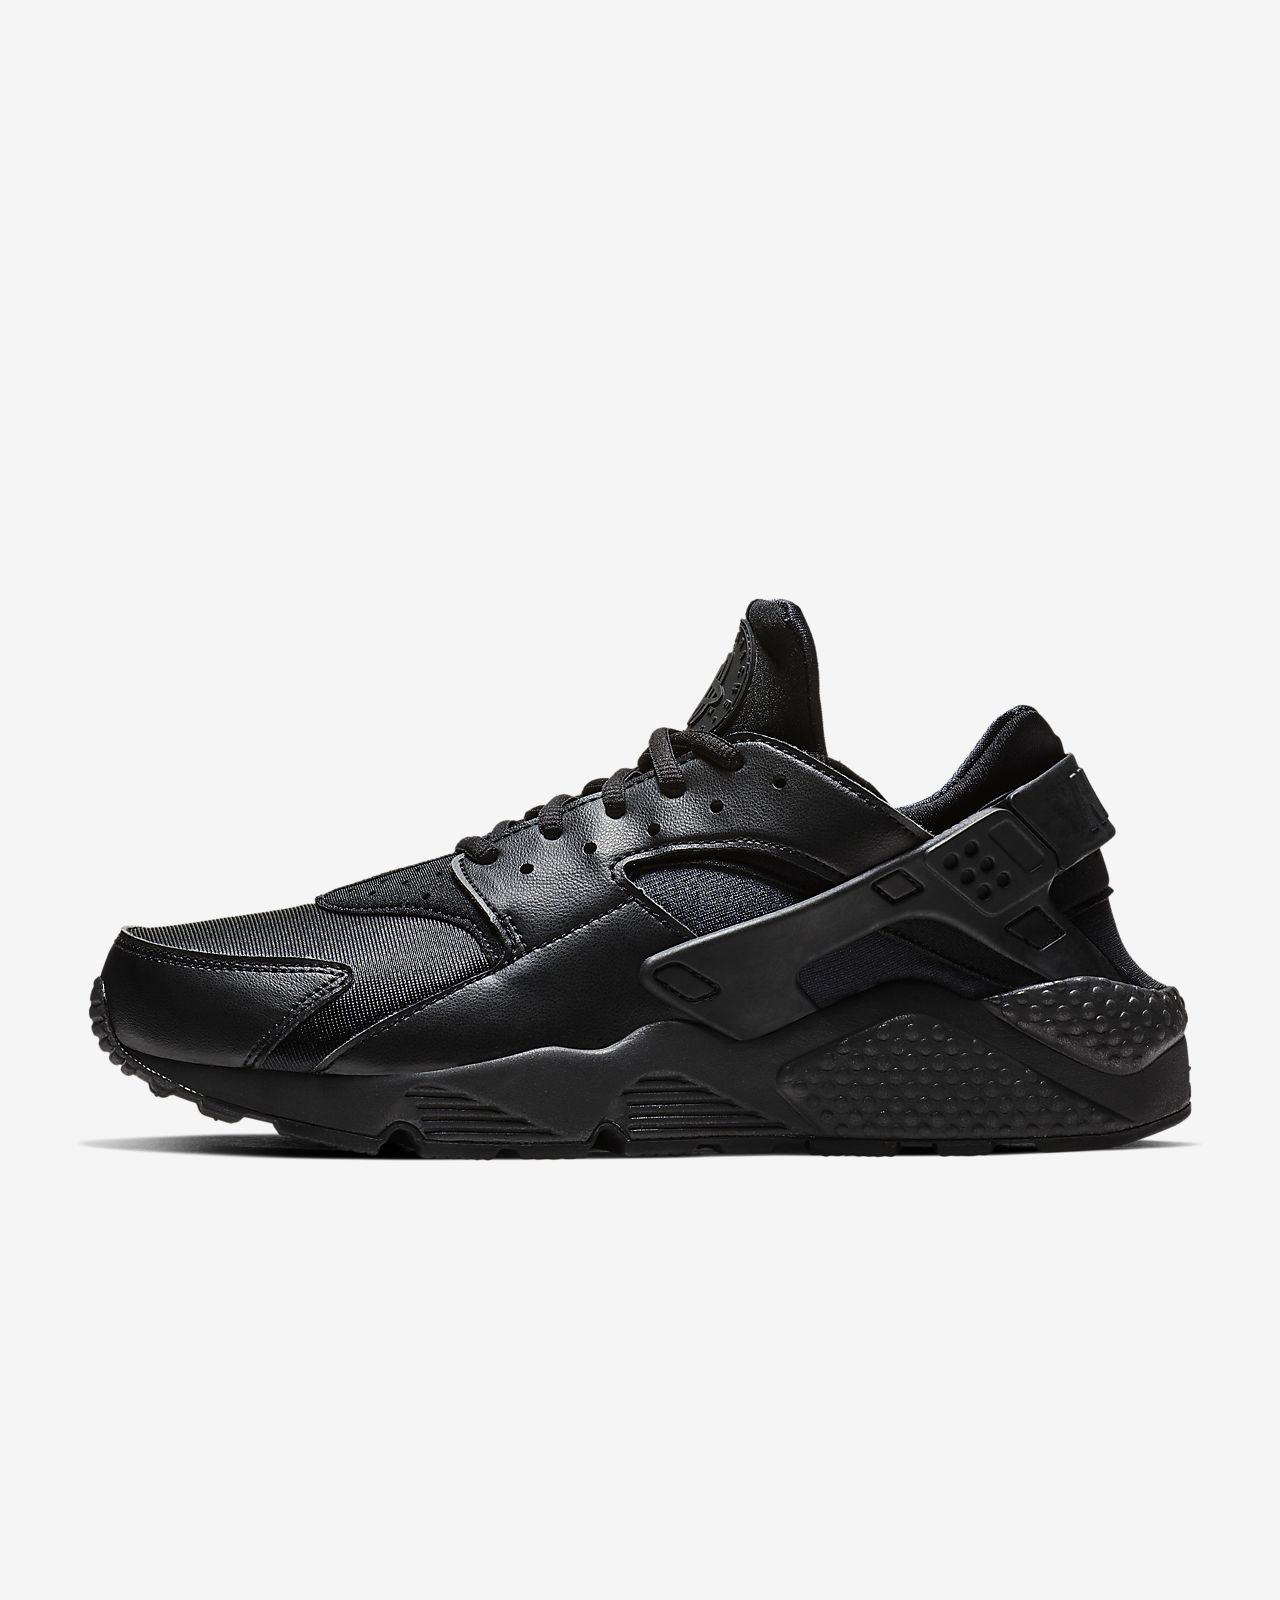 85c4c0b37be Nike Air Huarache Women s Shoe. Nike.com